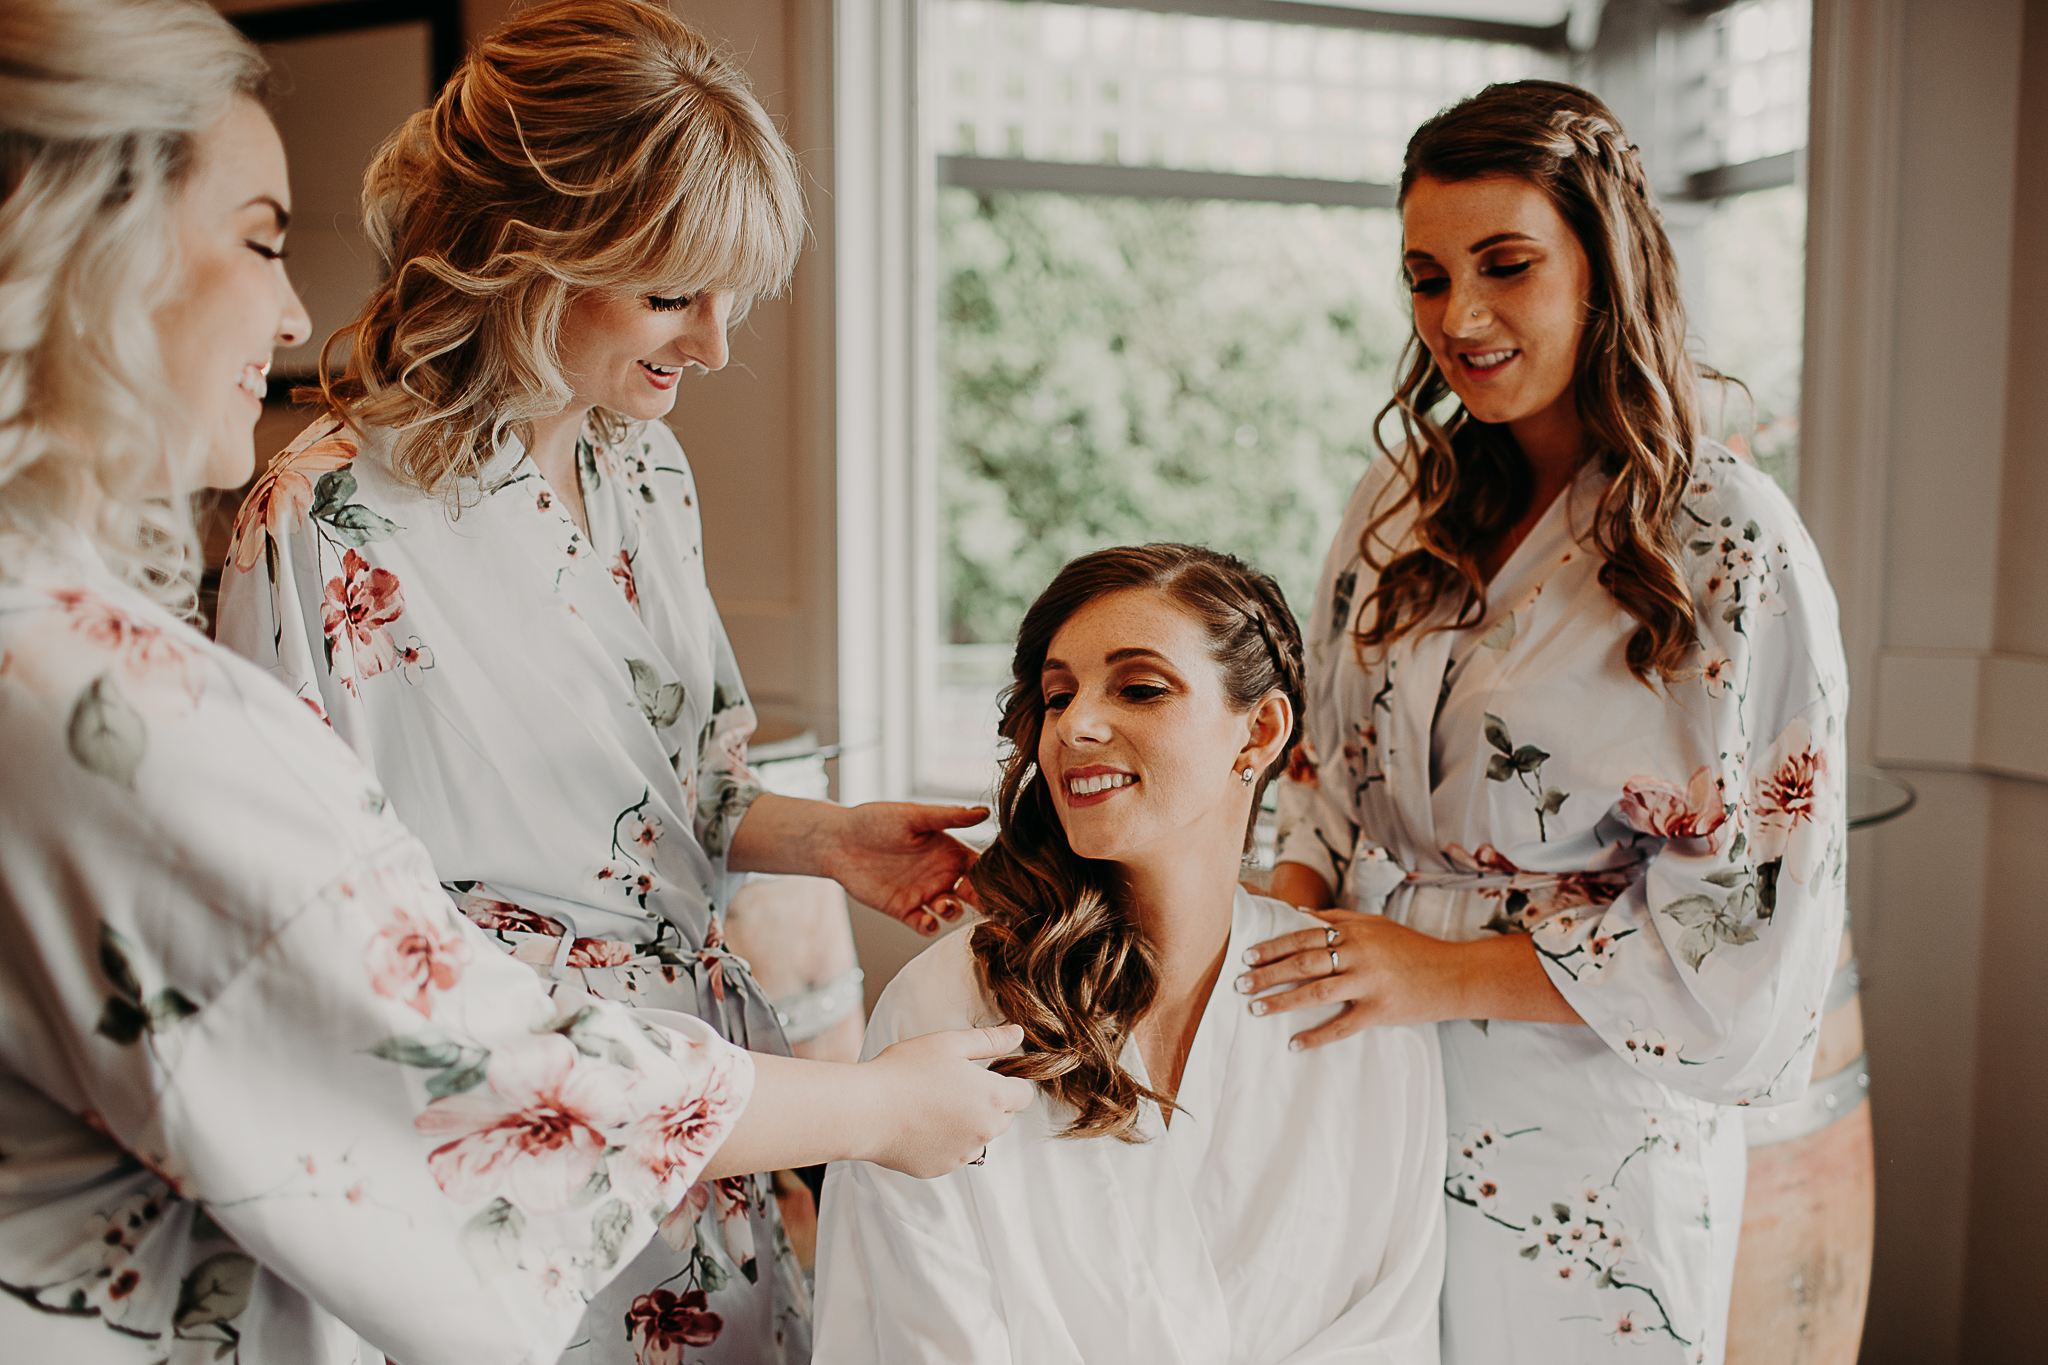 Megan-Gallagher-Photography-Columbia-Winery-Woodinville-Washinton (142).jpg